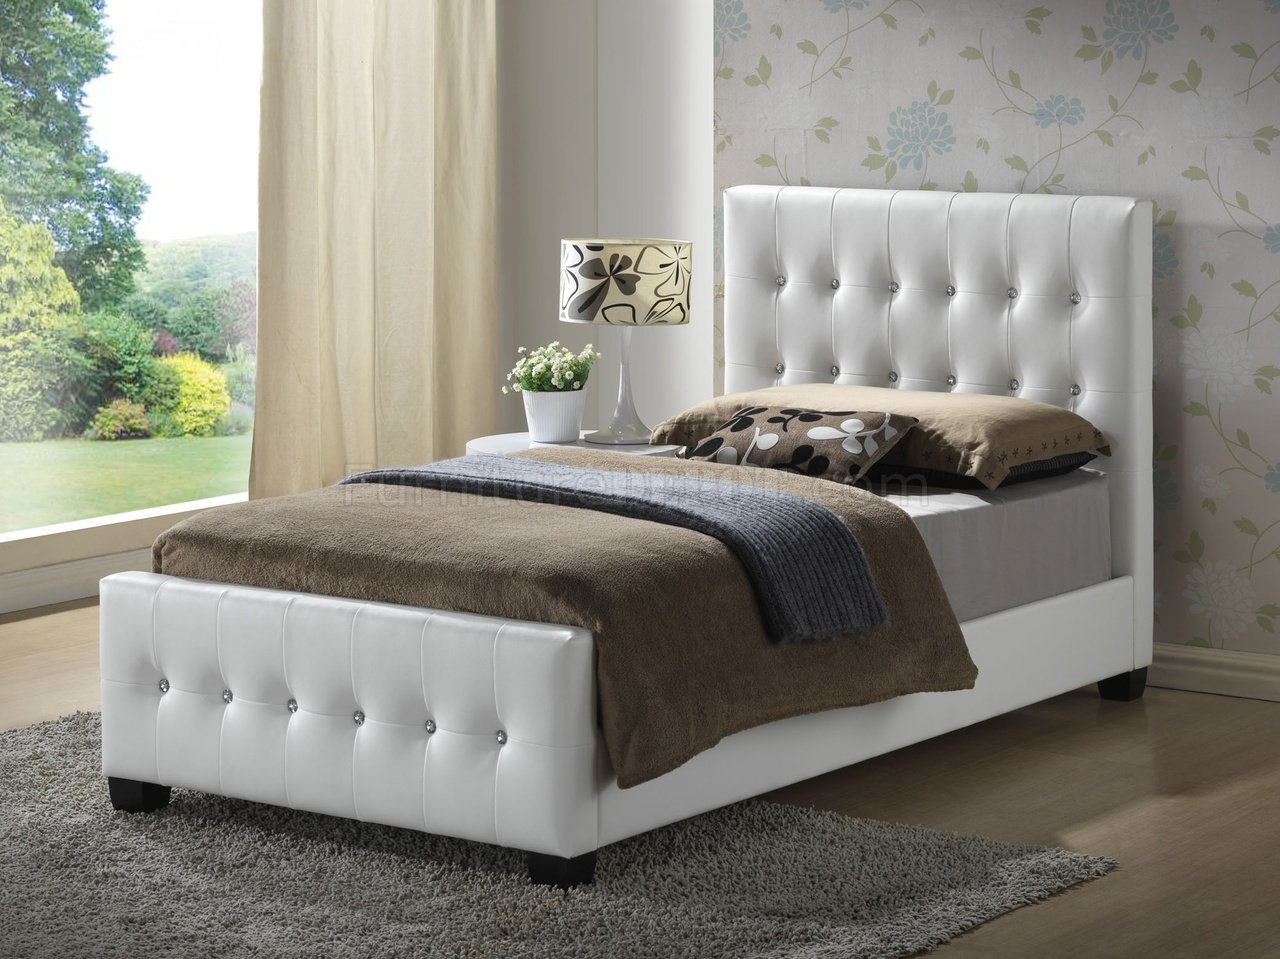 g2587 upholstered bed in white